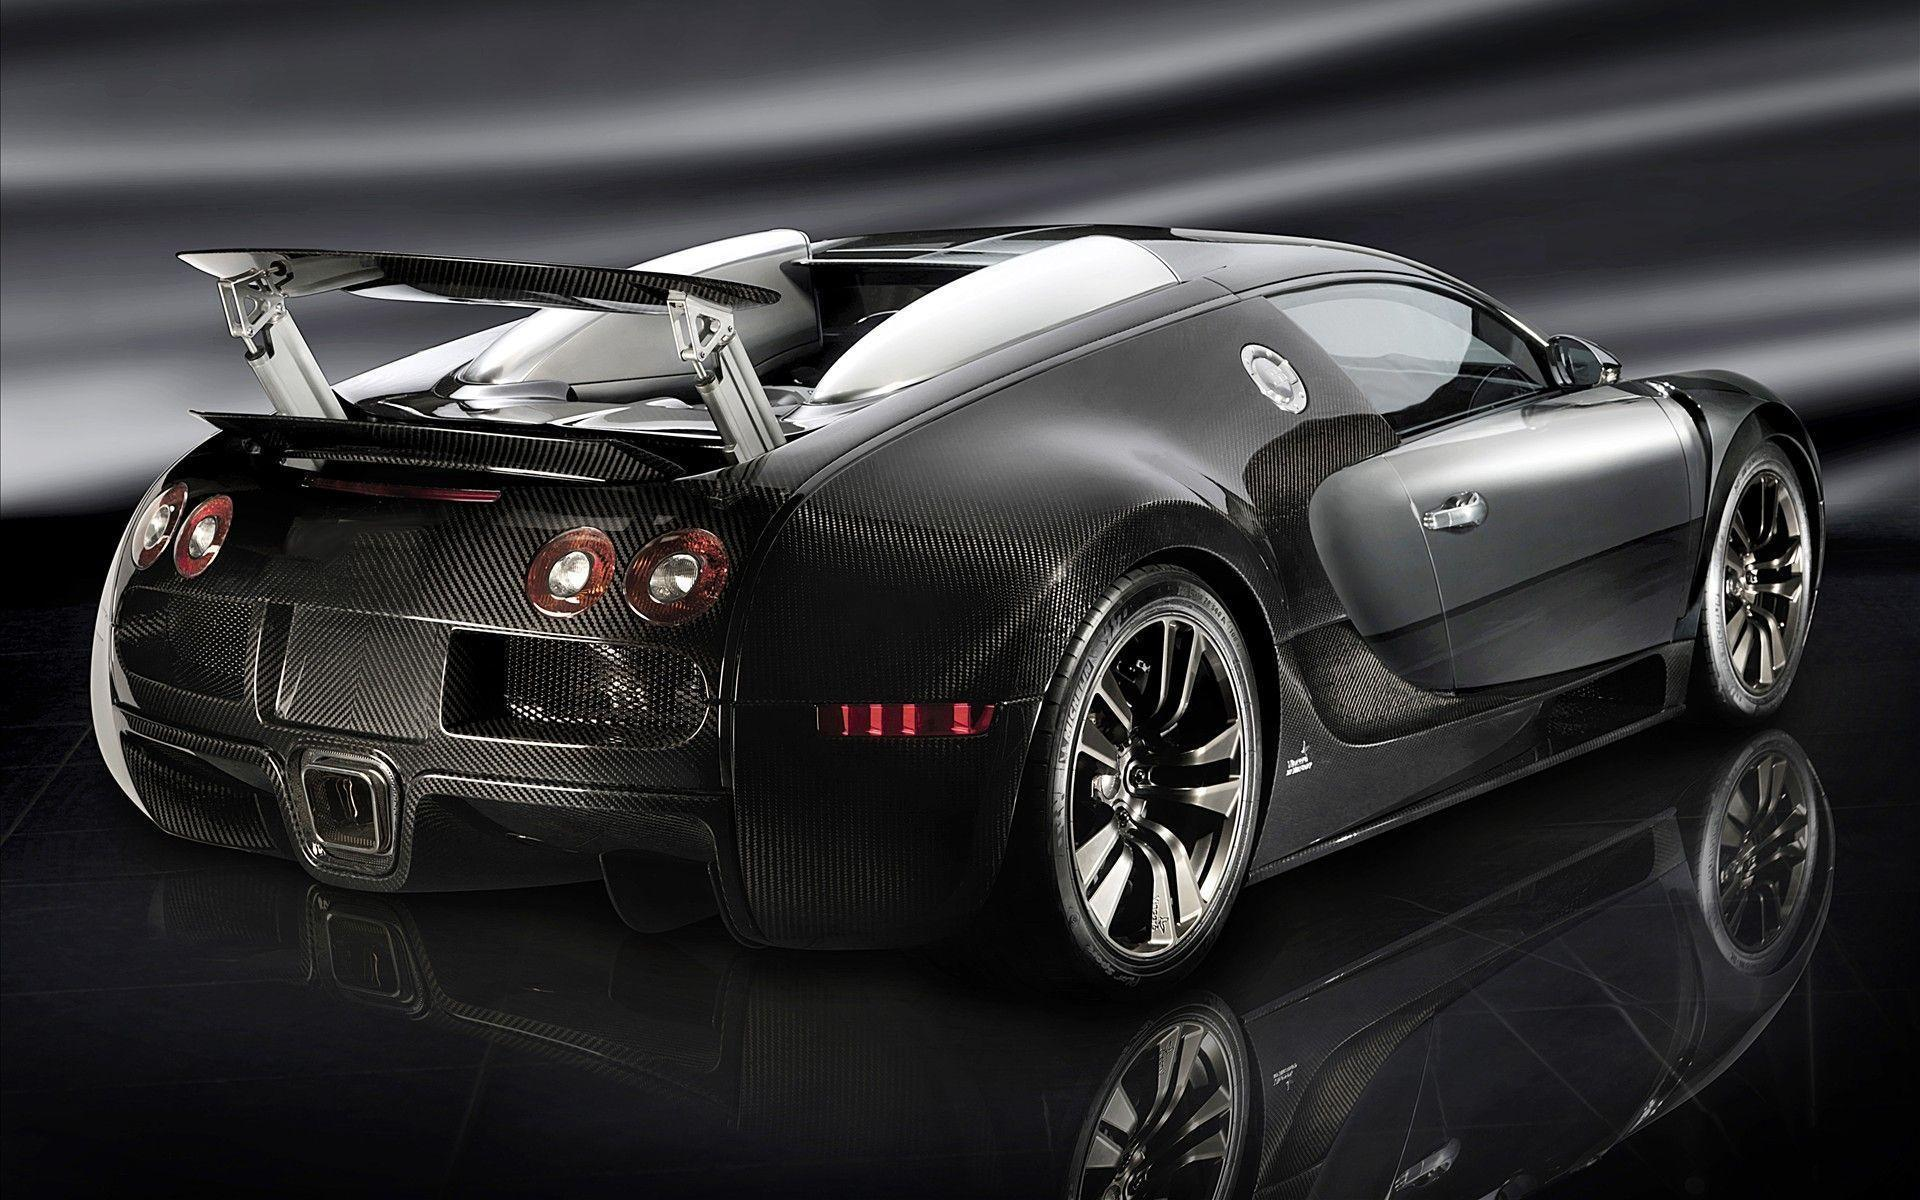 Sport Wallpaper Bugatti Veyron: Bugatti Veyron HD Wallpapers